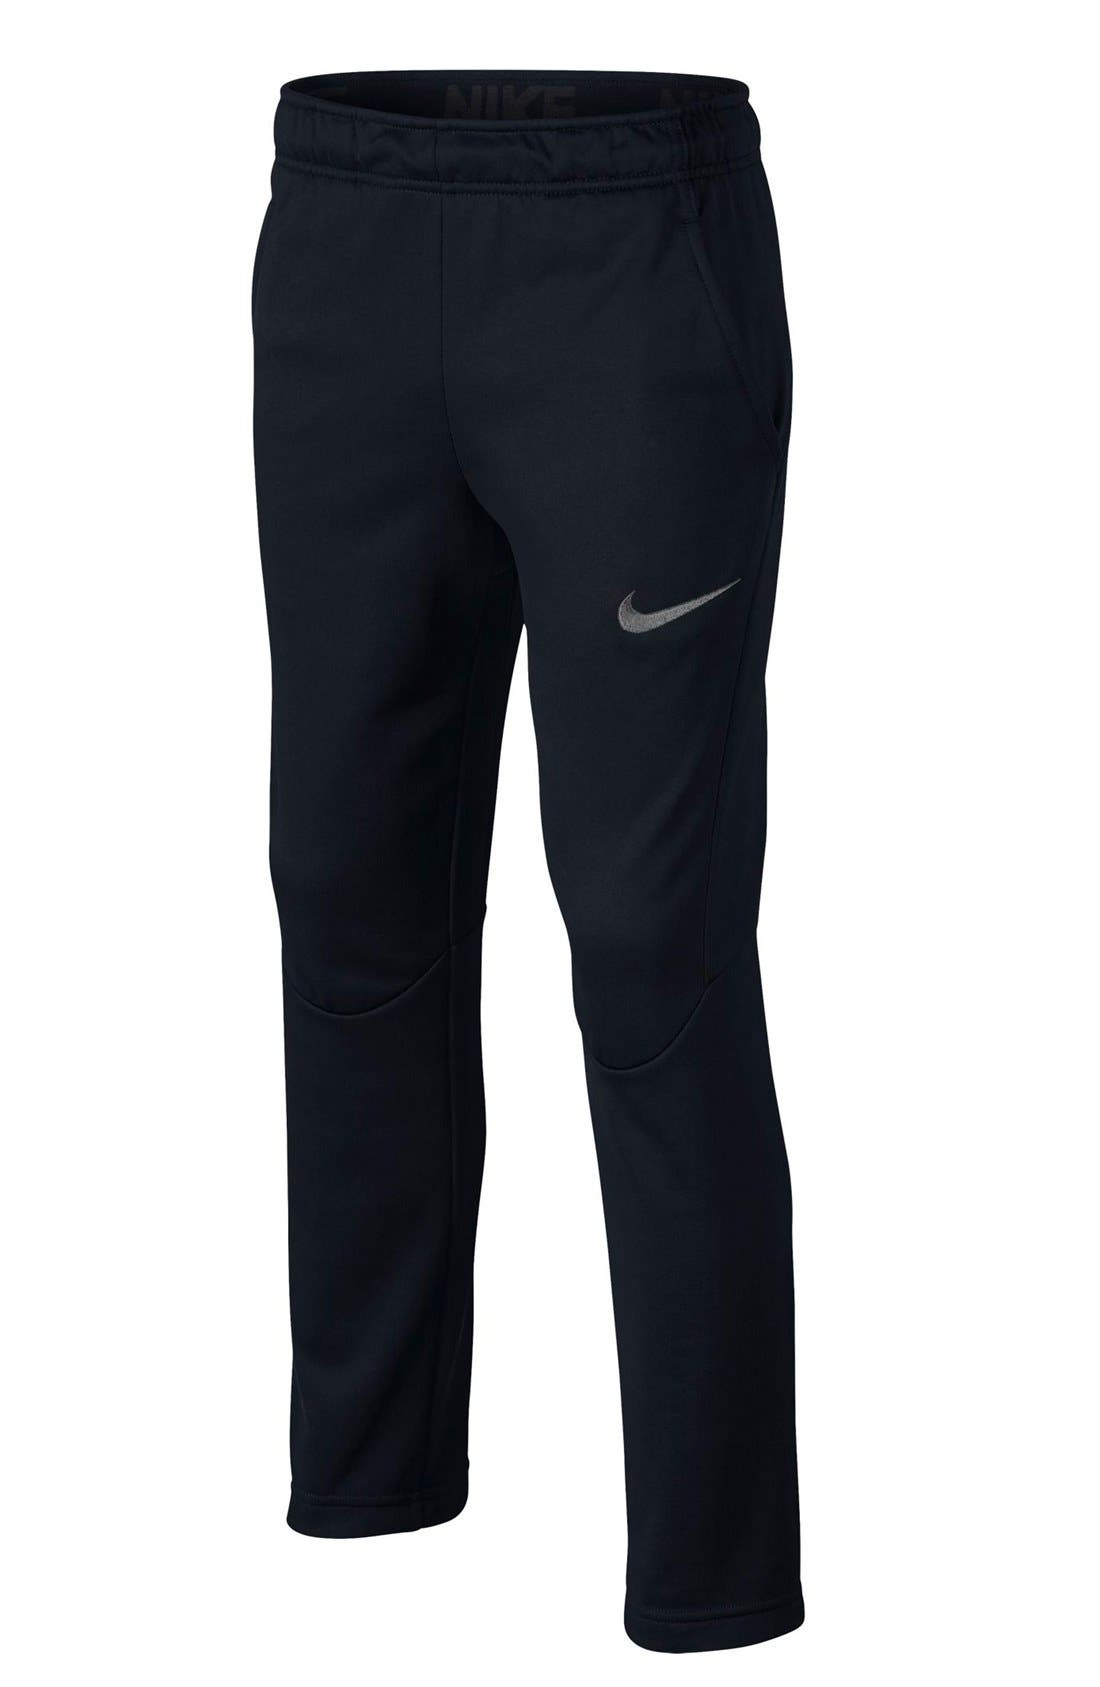 Main Image - Nike Therma-FIT Training Pants (Little Boys & Big Boys) (Regular Retail Price: $40.00)